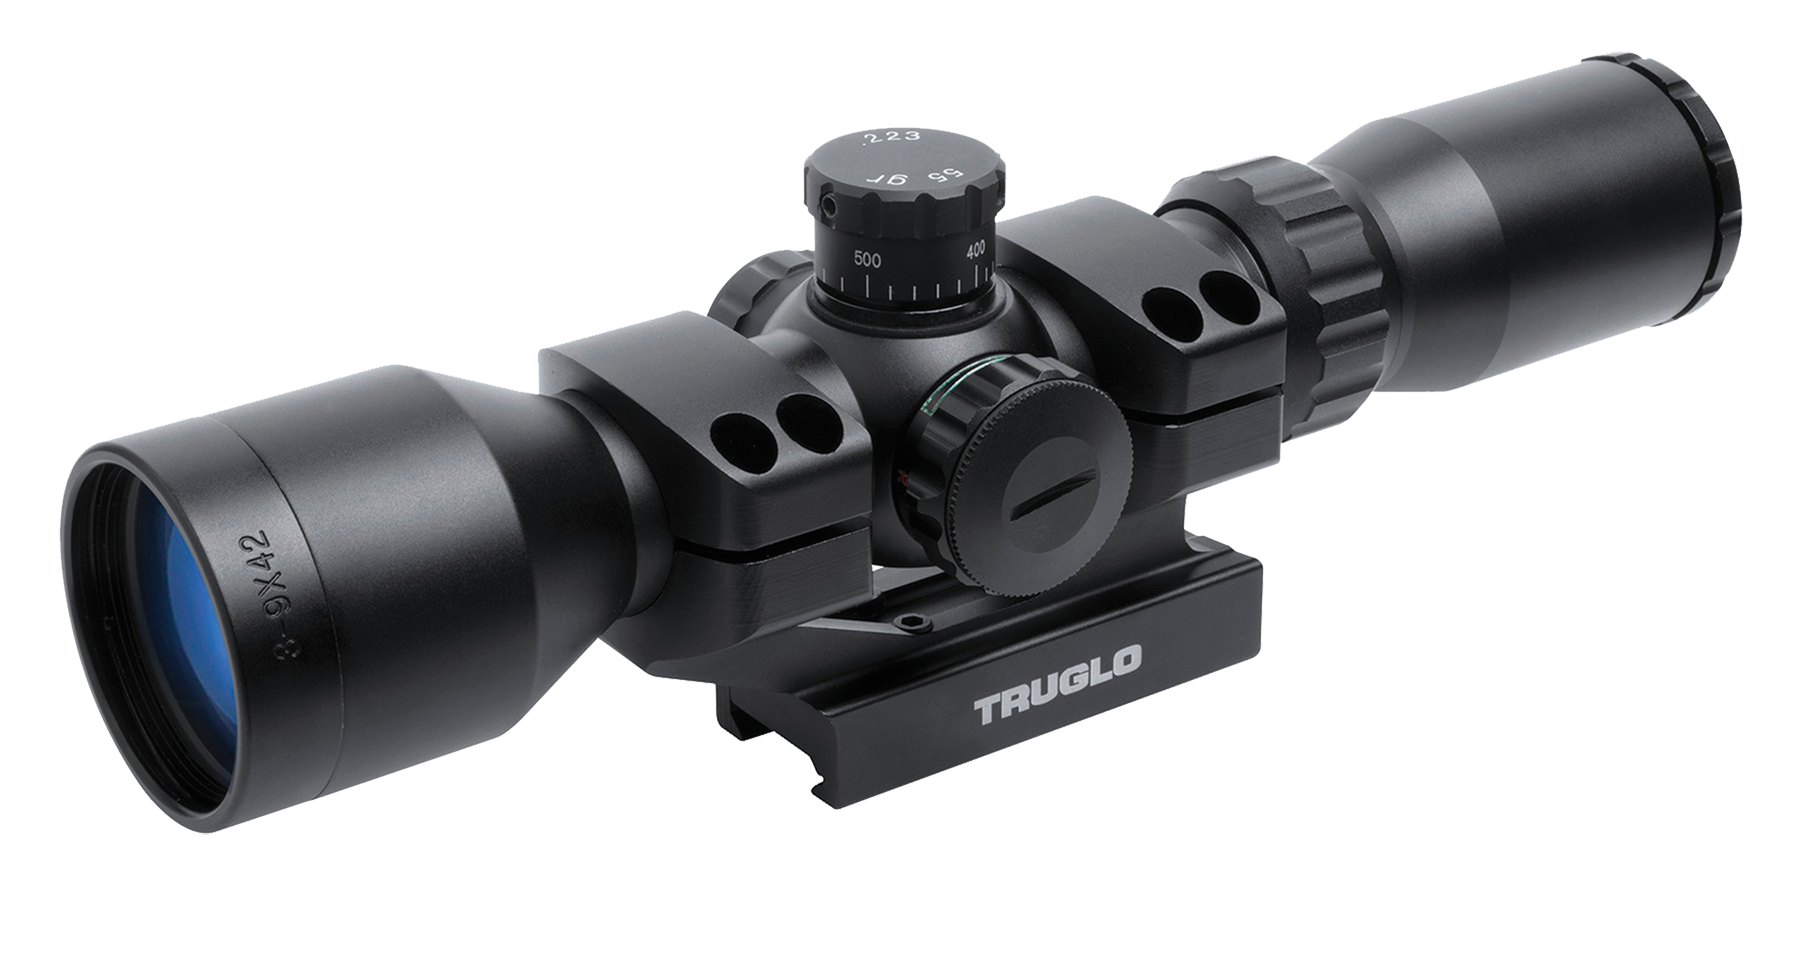 TRUGLO Tactical 3-9x42 Mil-Dot Second-Focal Plane 1